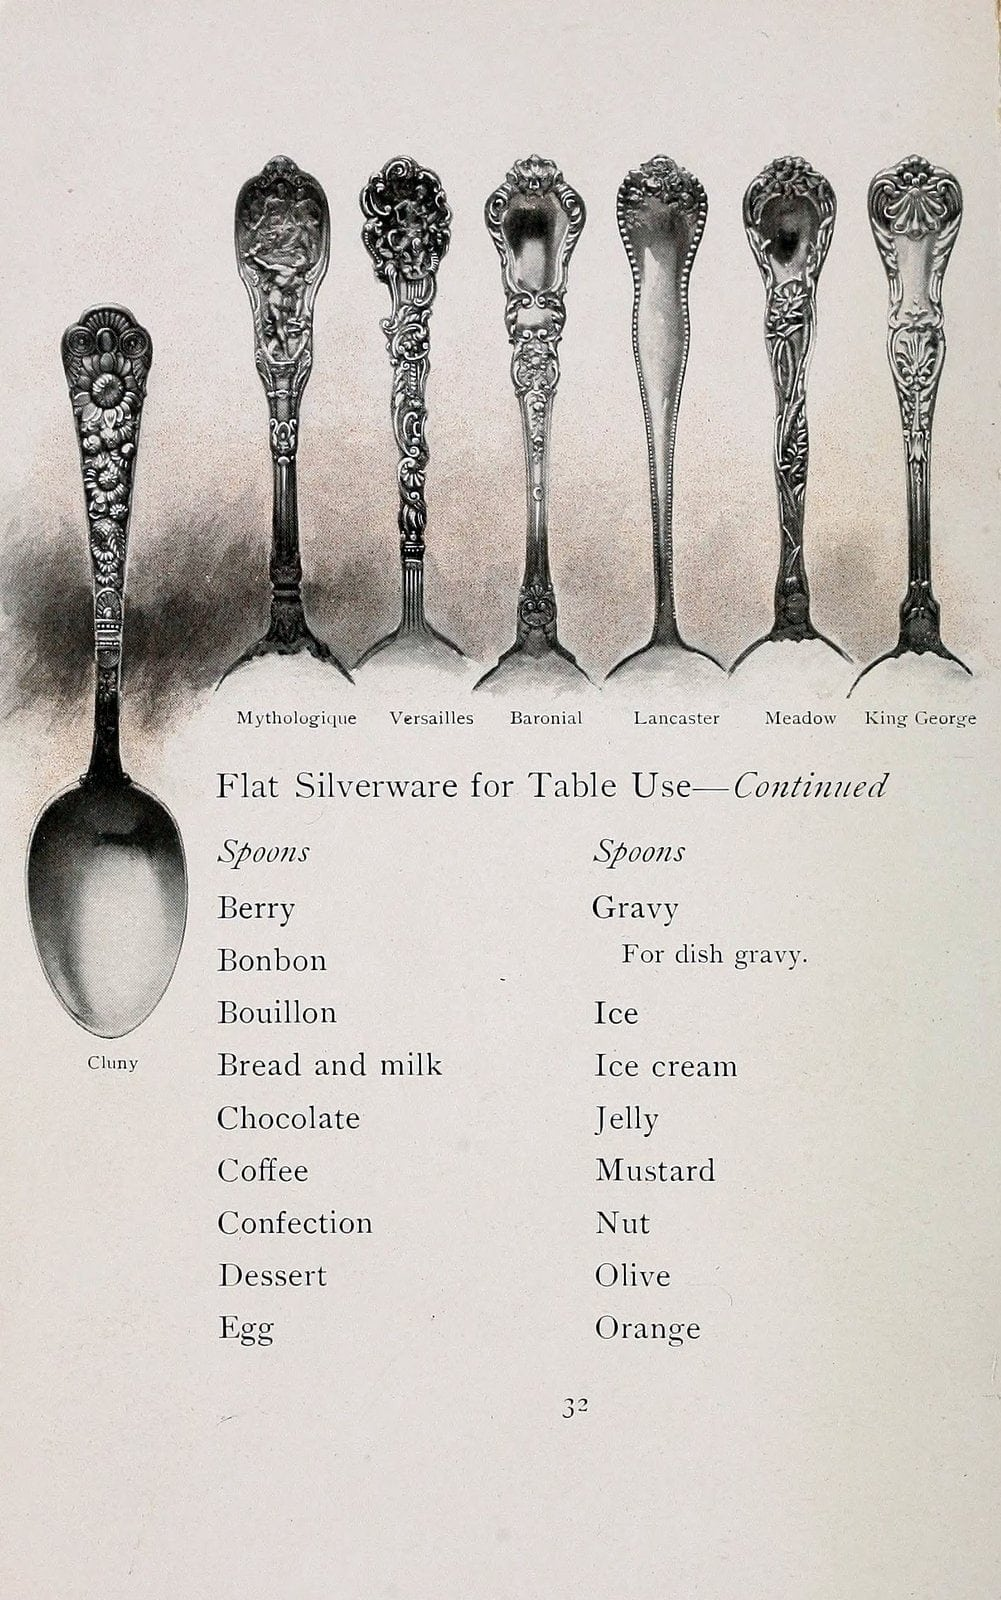 Flat silverware for table use